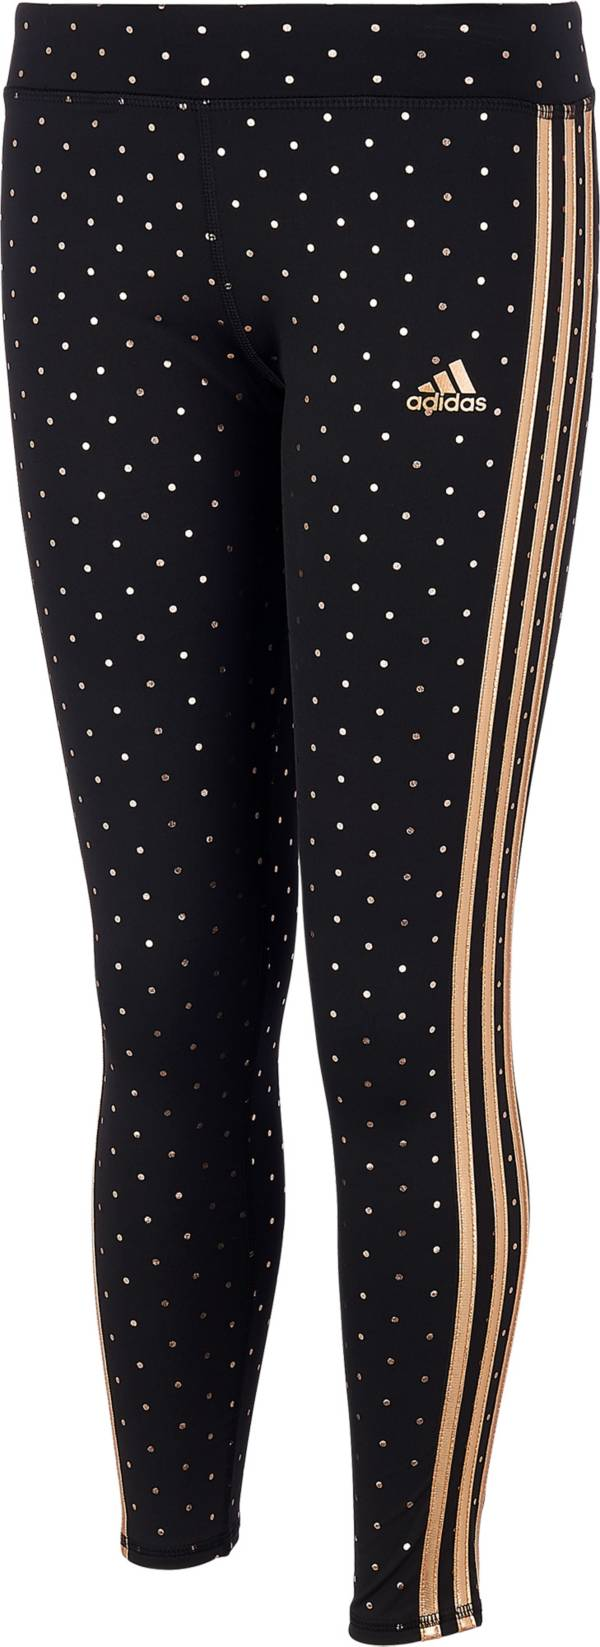 adidas Little Girls' climalite Dot Print Tights product image